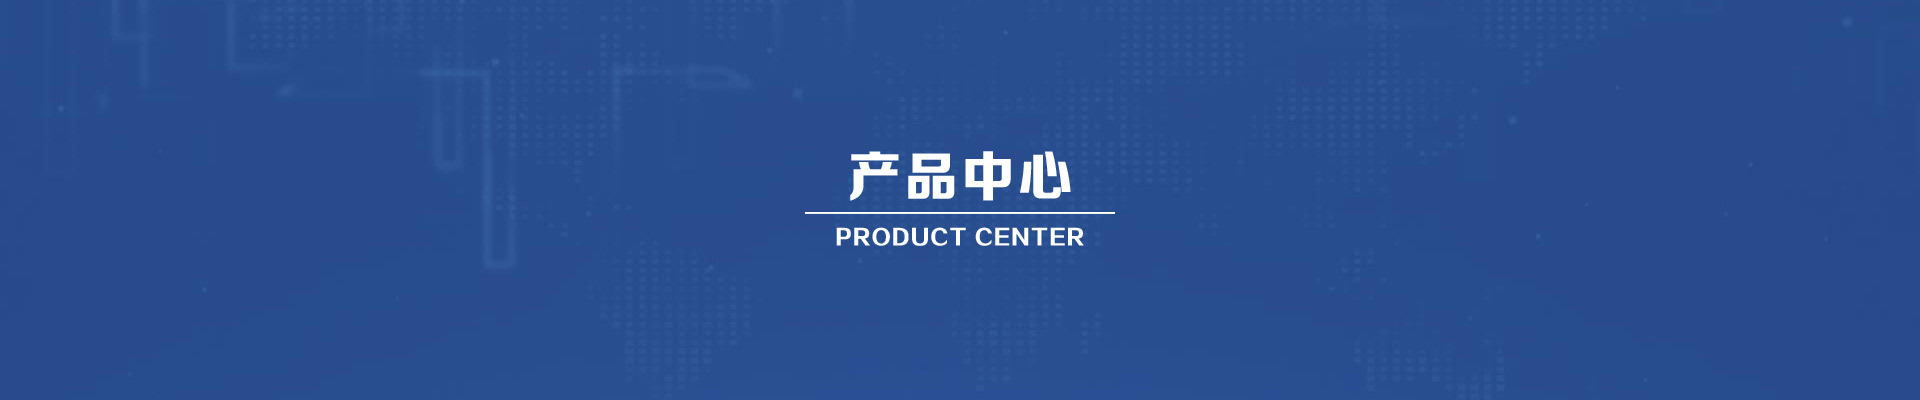 X-RAY检测机